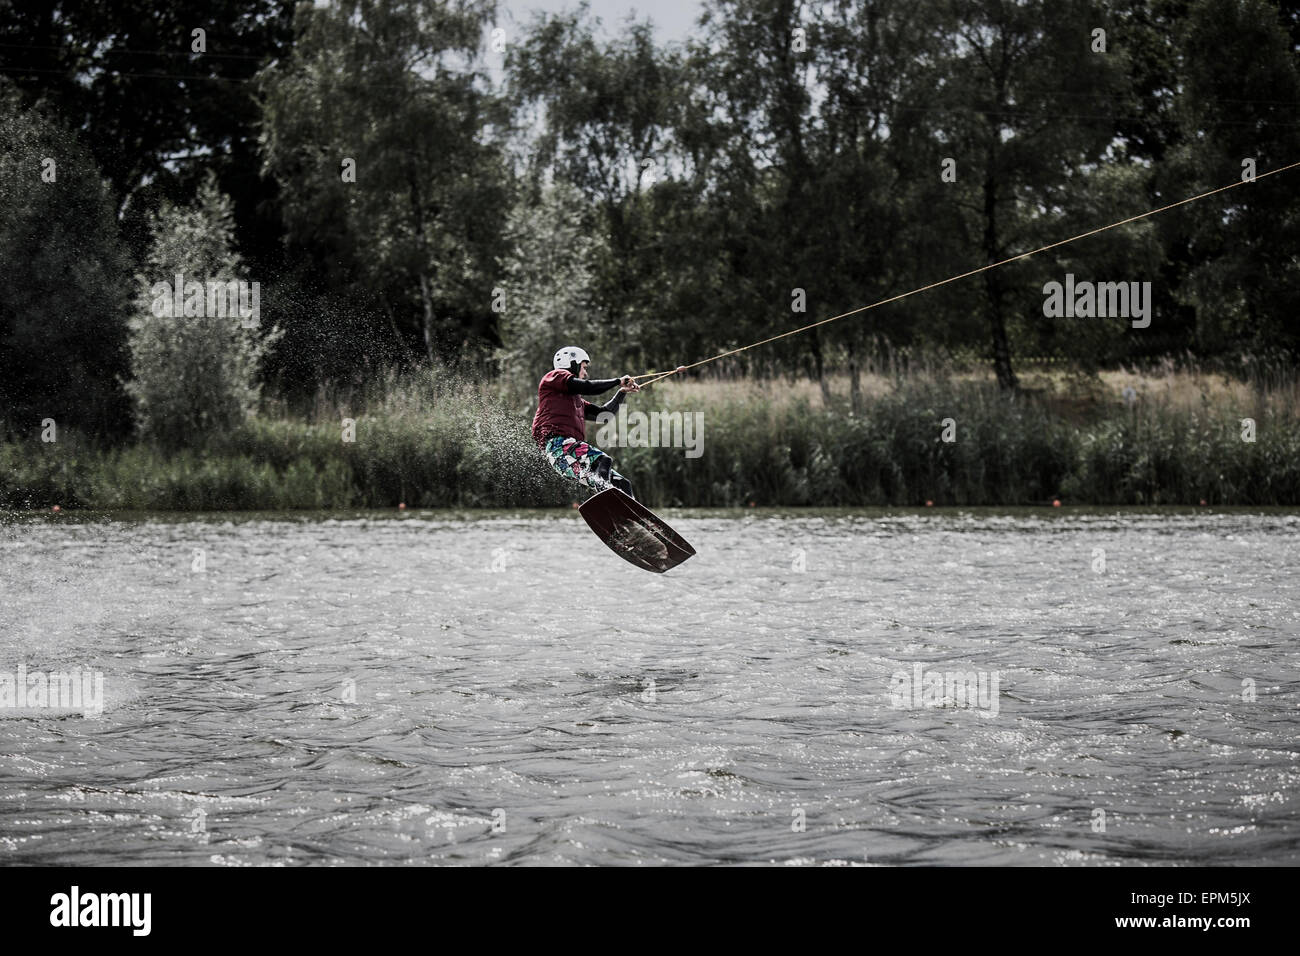 Germany, Garbsen, wakeboarder at Blue Lake jumping in the air - Stock Image